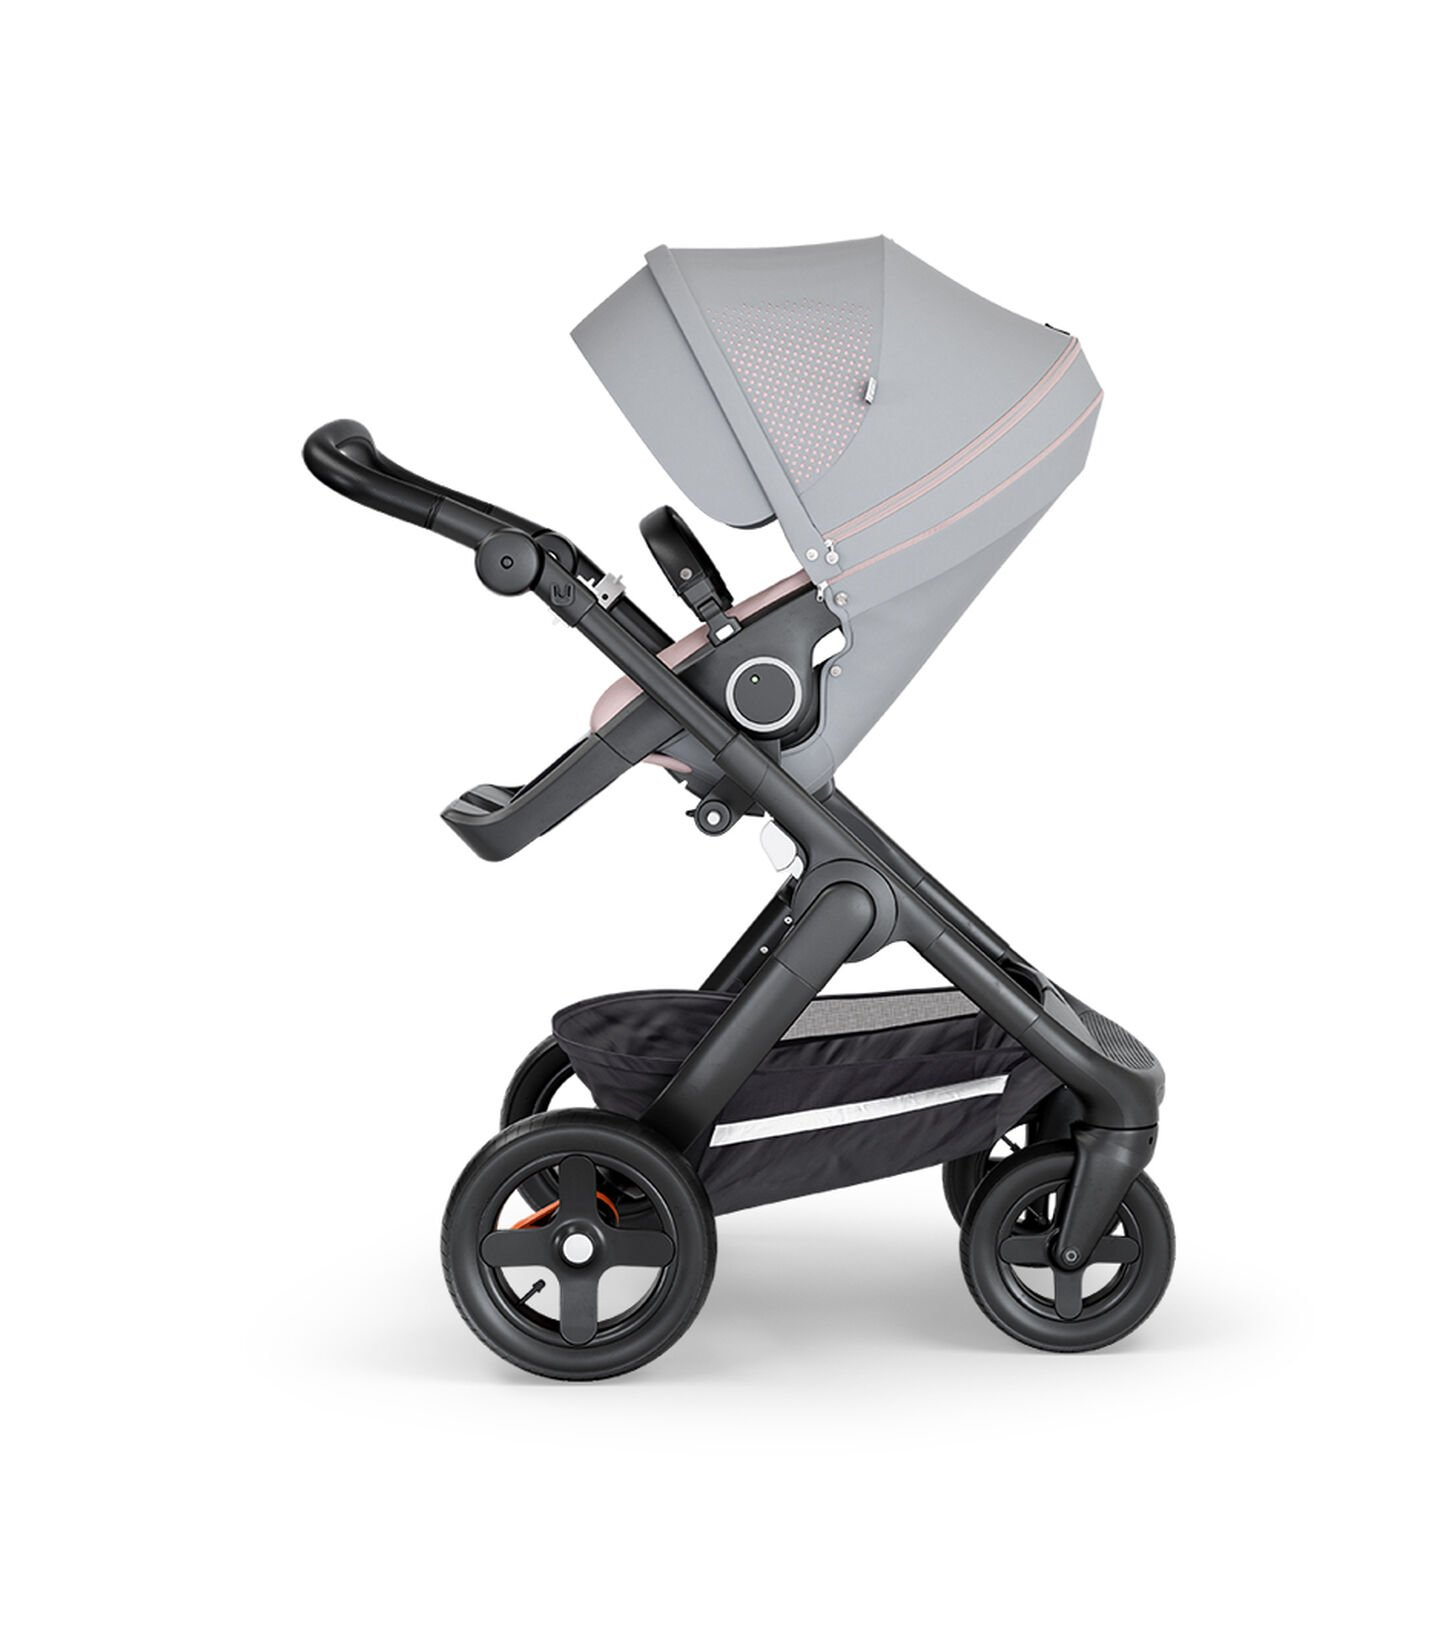 Stokke® Trailz™ with Black Chassis, Black Leatherette and Terrain Wheels. Stokke® Stroller Seat, Athleisure Pink.